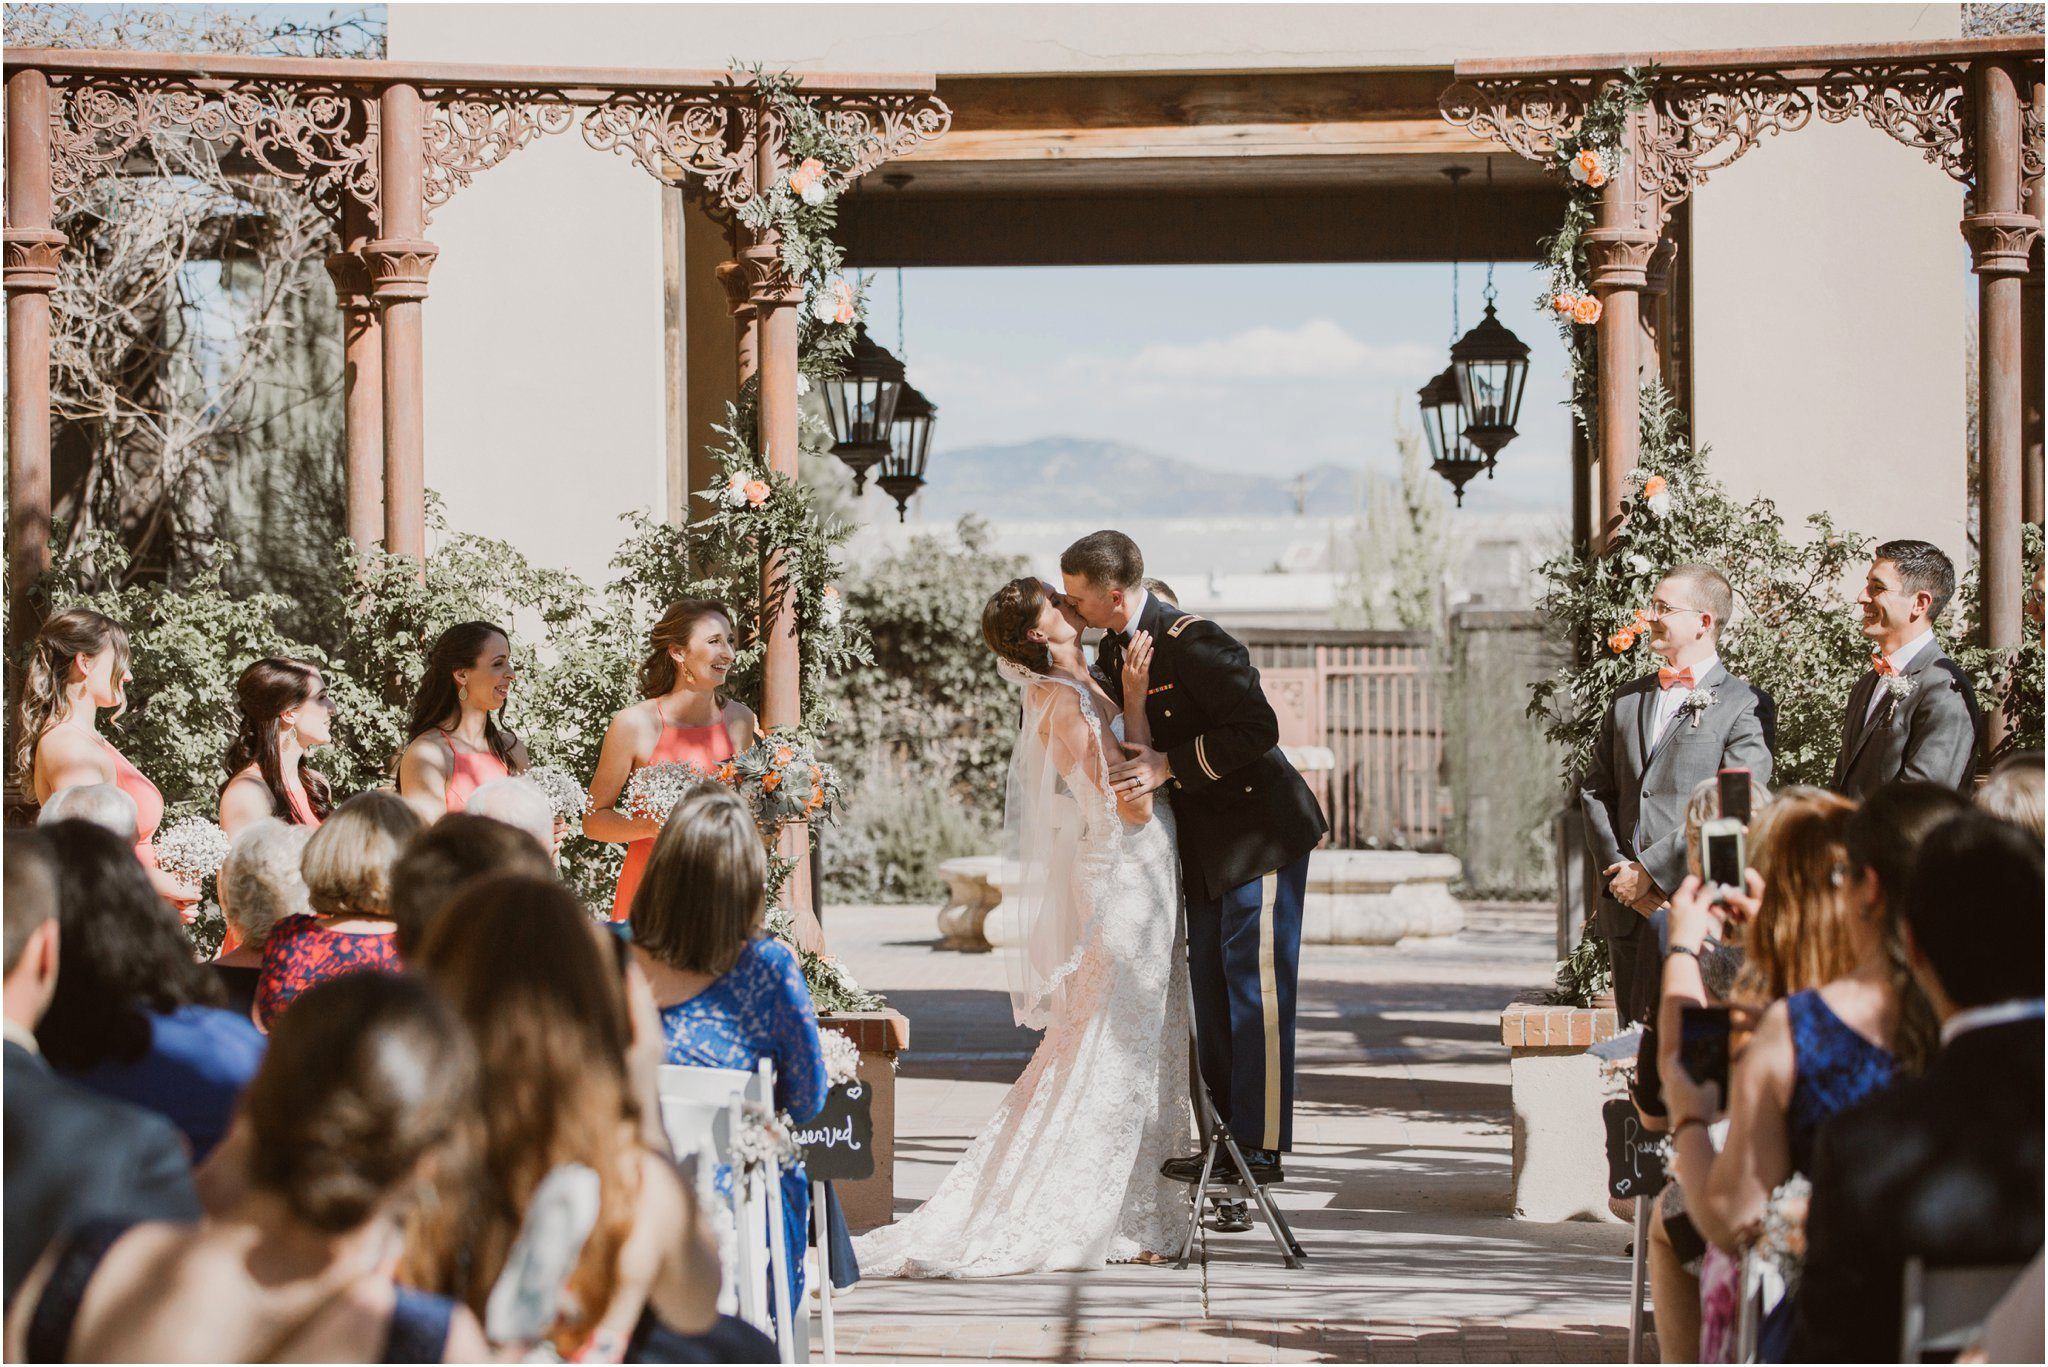 29Blue Rose Photography_ Albuquerque Wedding Photographer_ Santa Fe Wedding Photographers